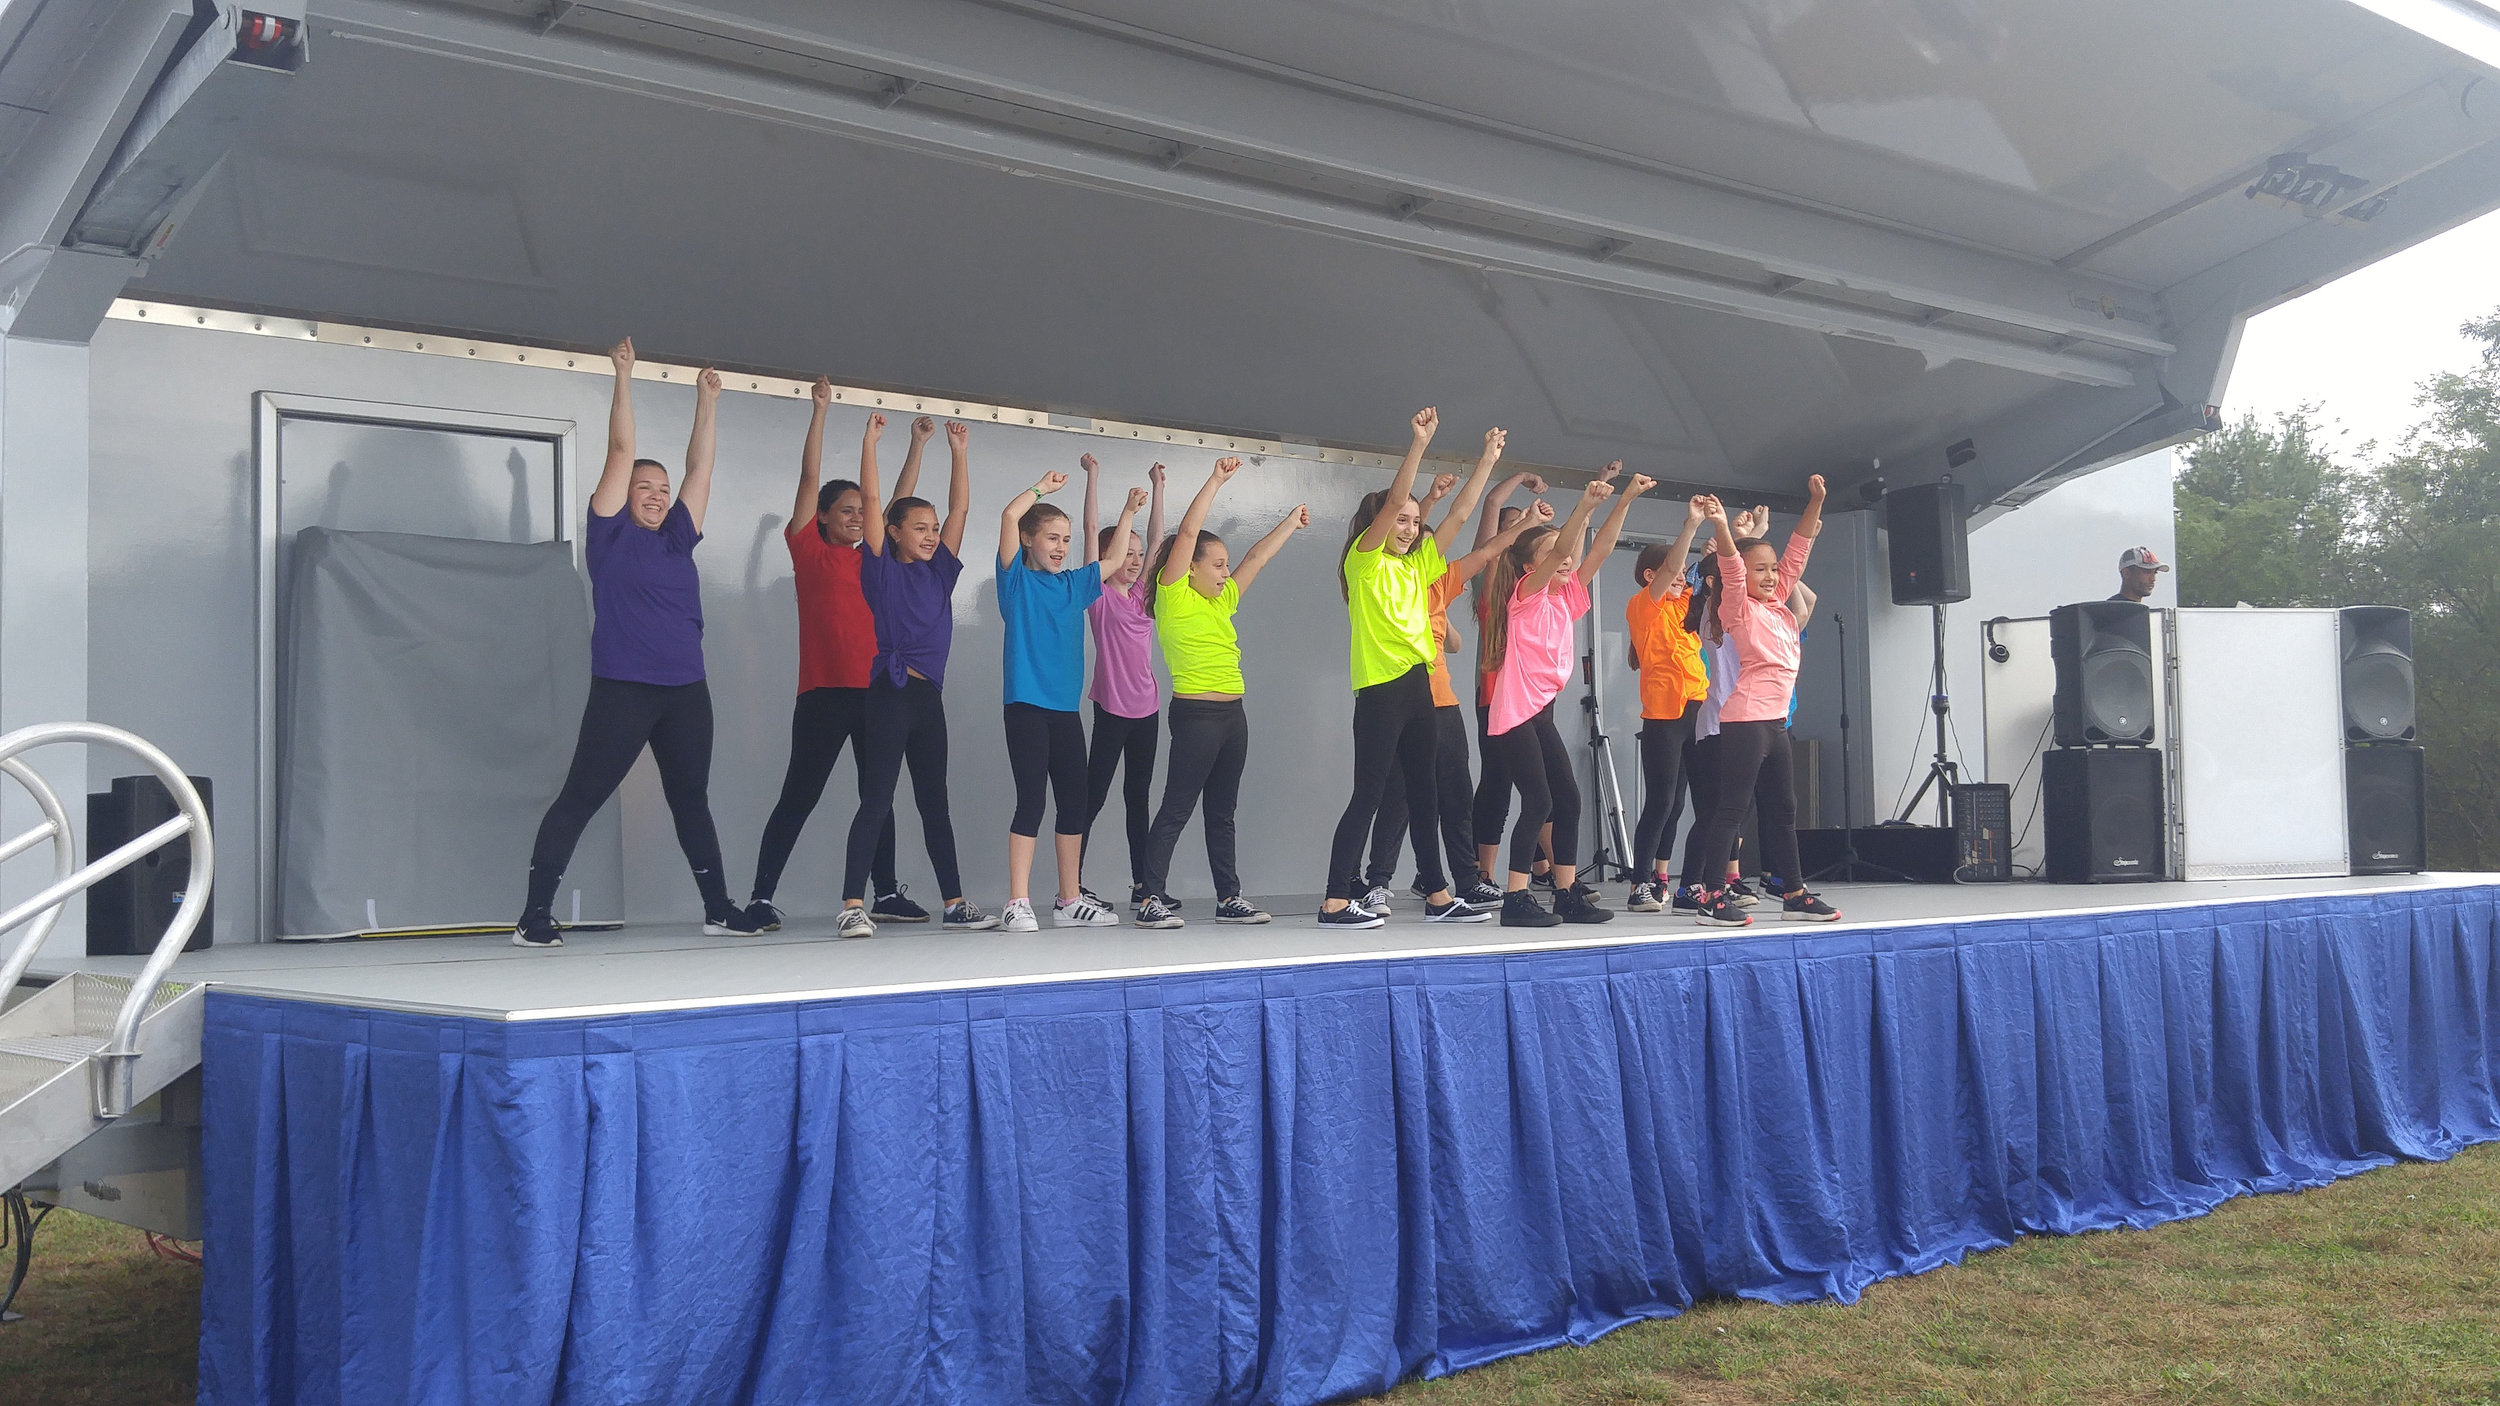 The young performers from the Stars of Tomorrow Dance Academy in Centerport took center stage.   Photo Courtesy of Rachael Risinger